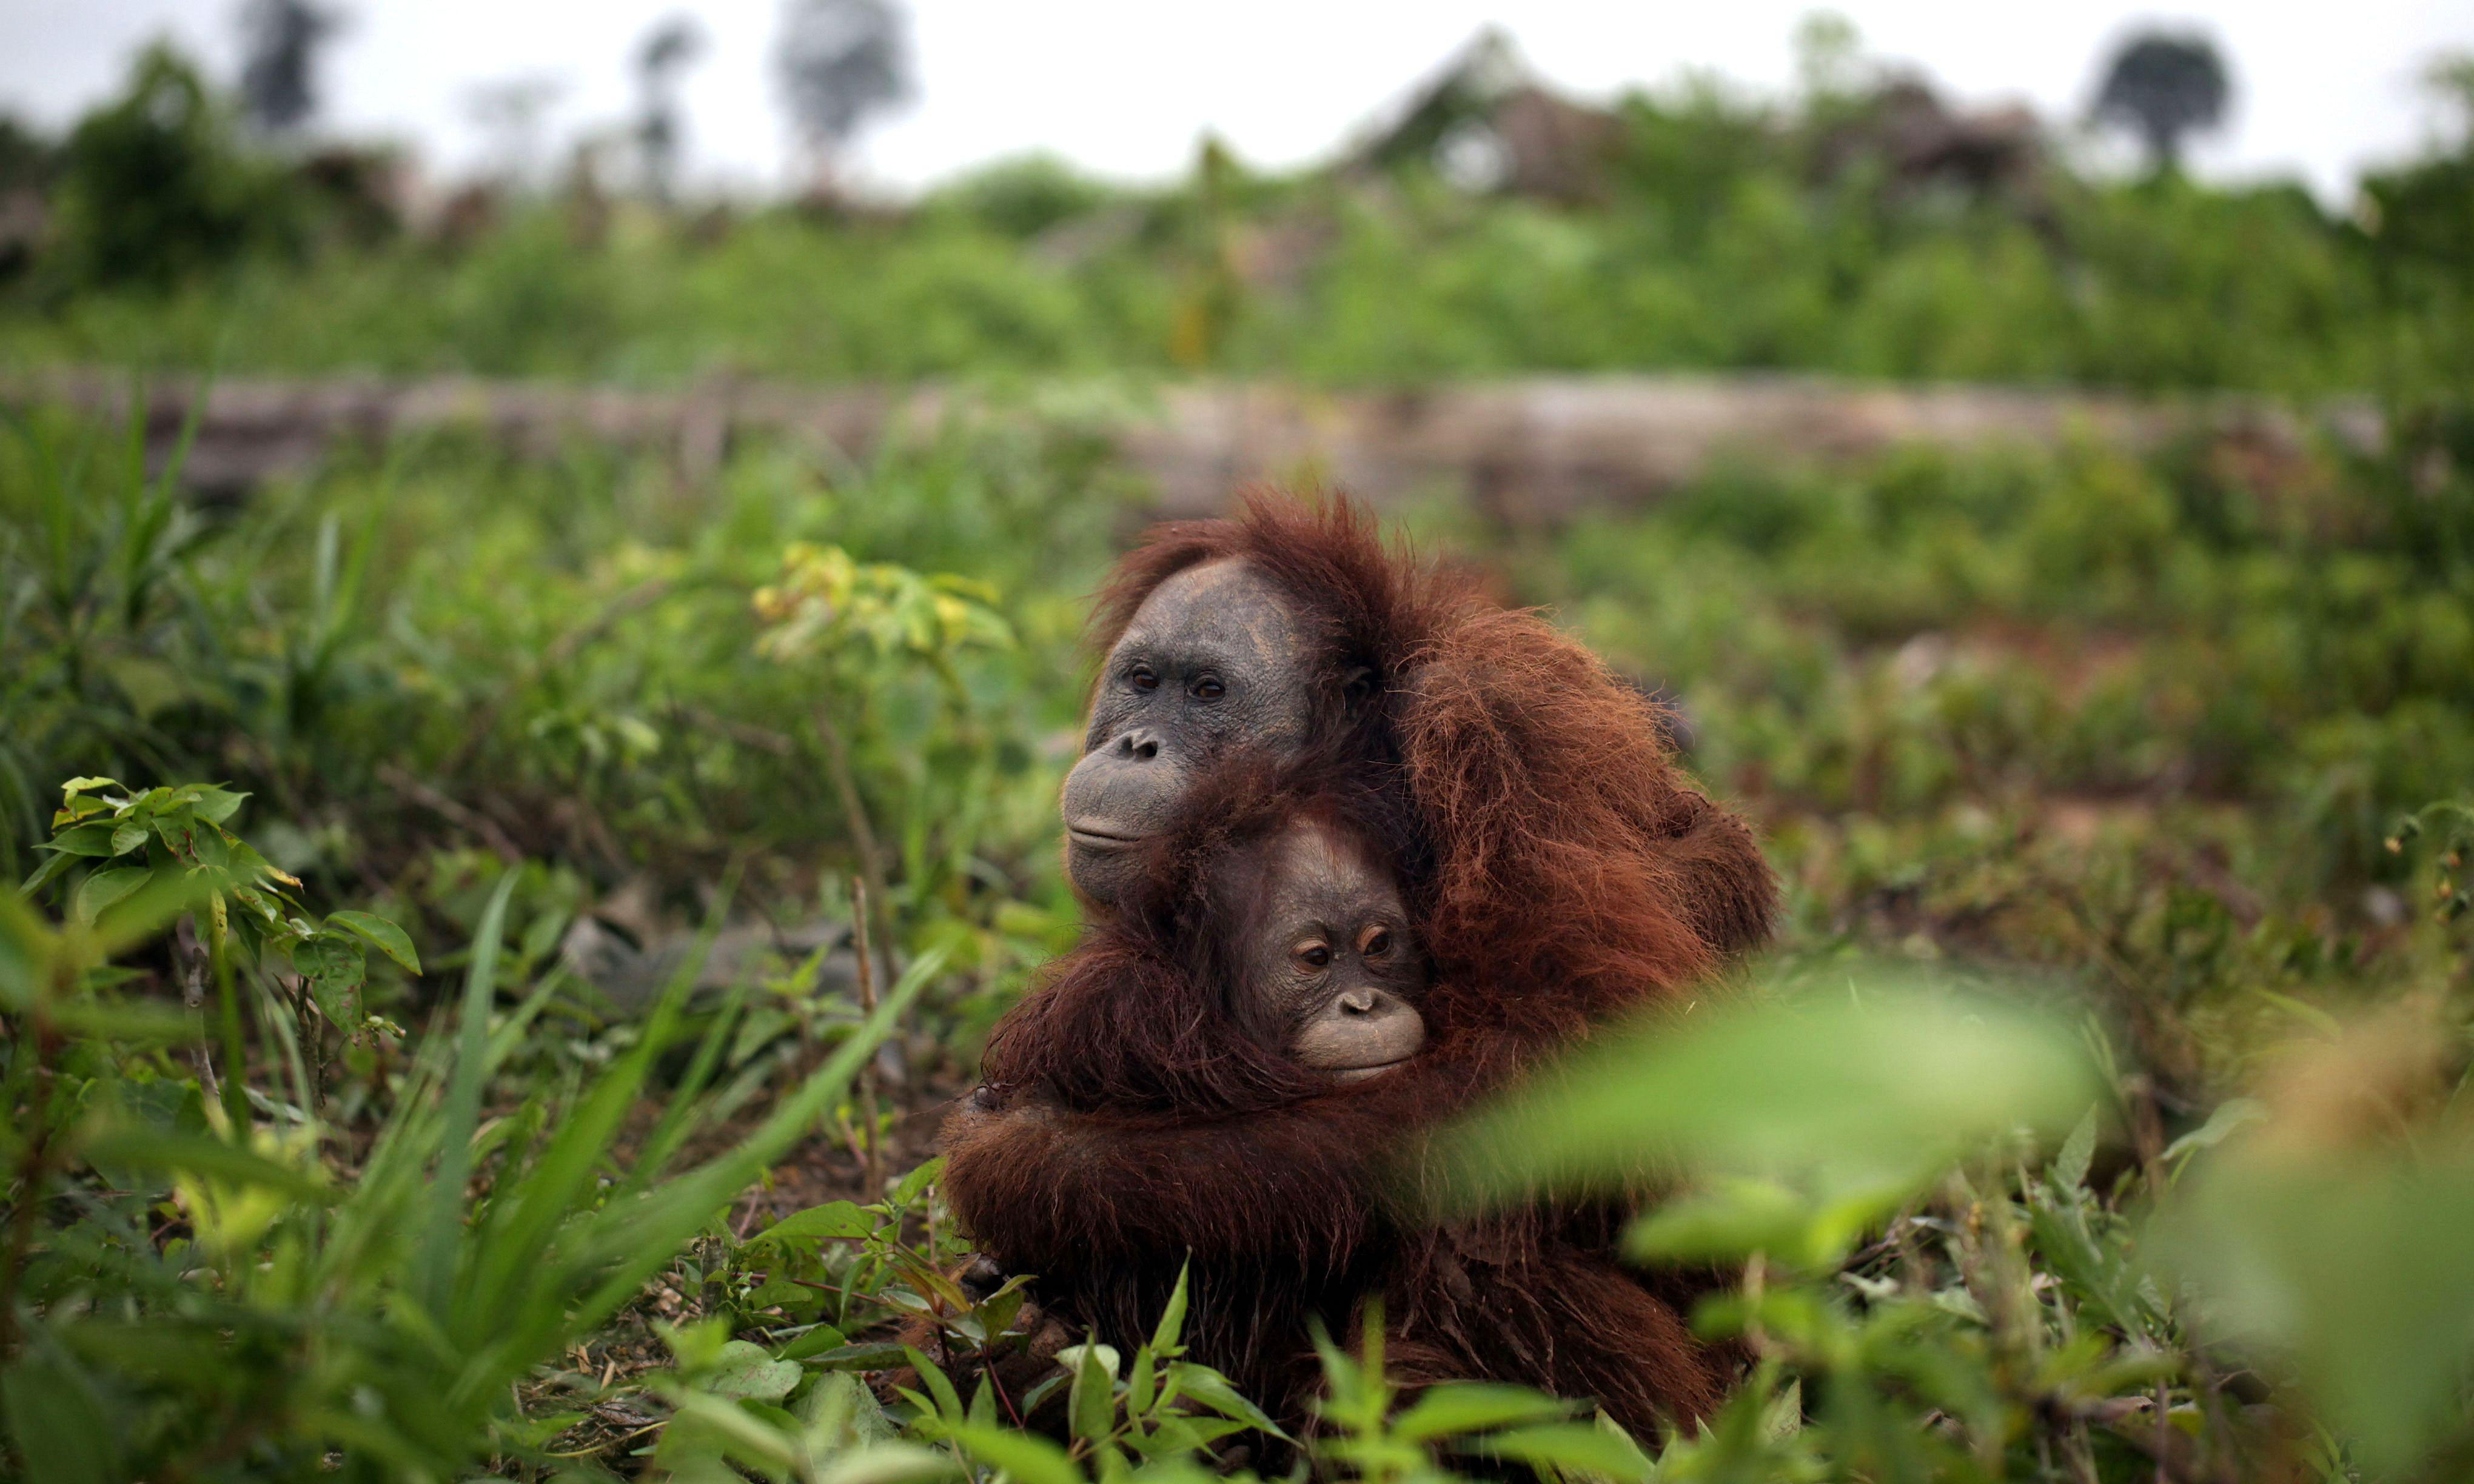 World's largest ecological study aims to make palm oil wildlife-friendly